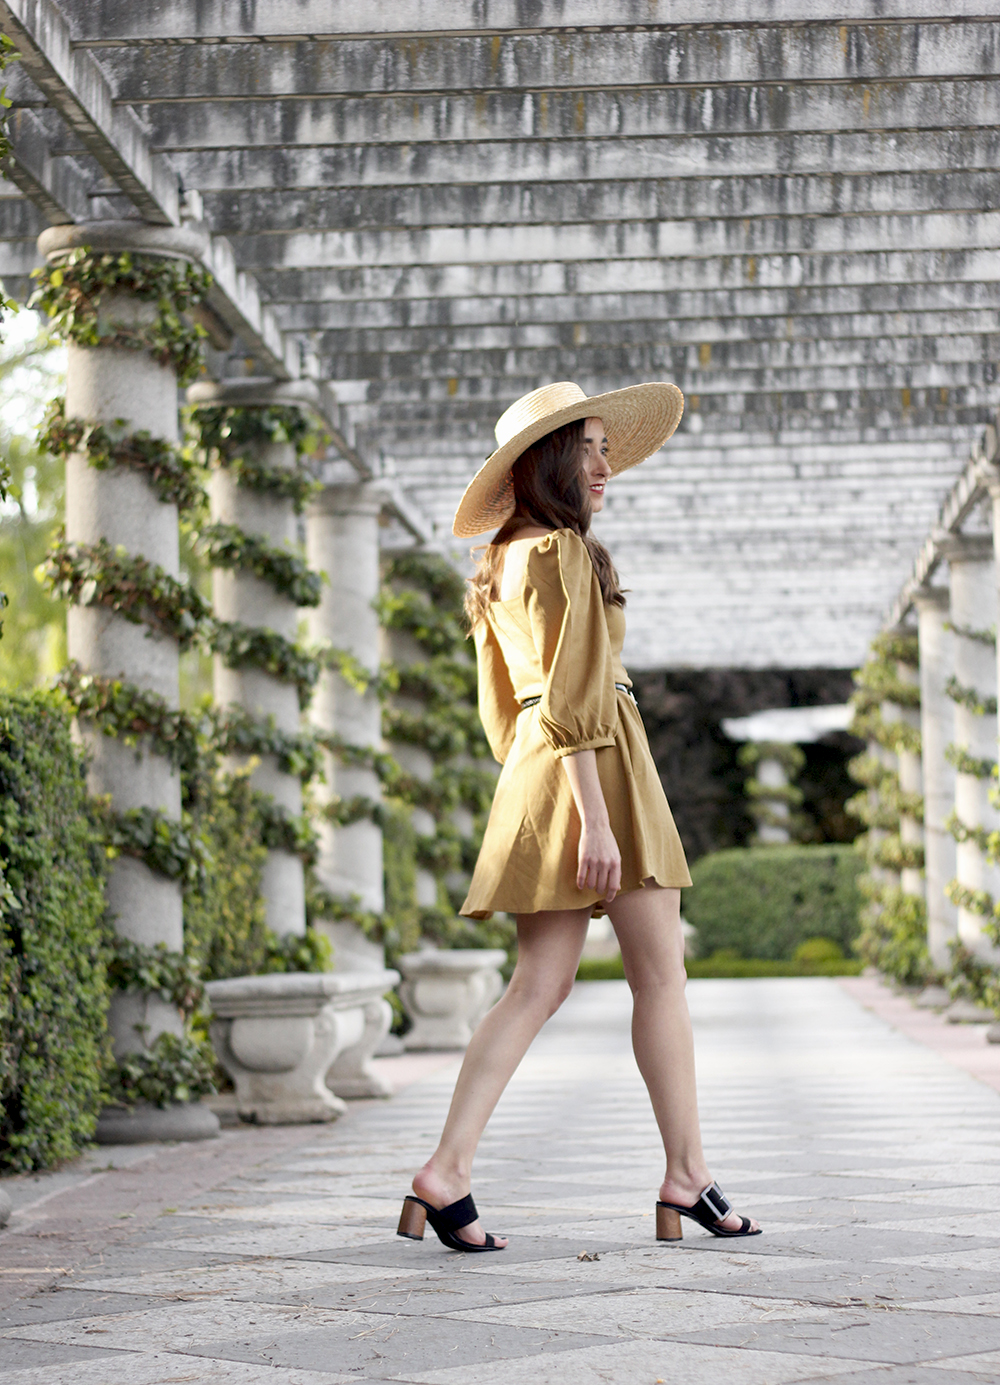 khaki linen dress black sandals straw hat street style spring outfit5